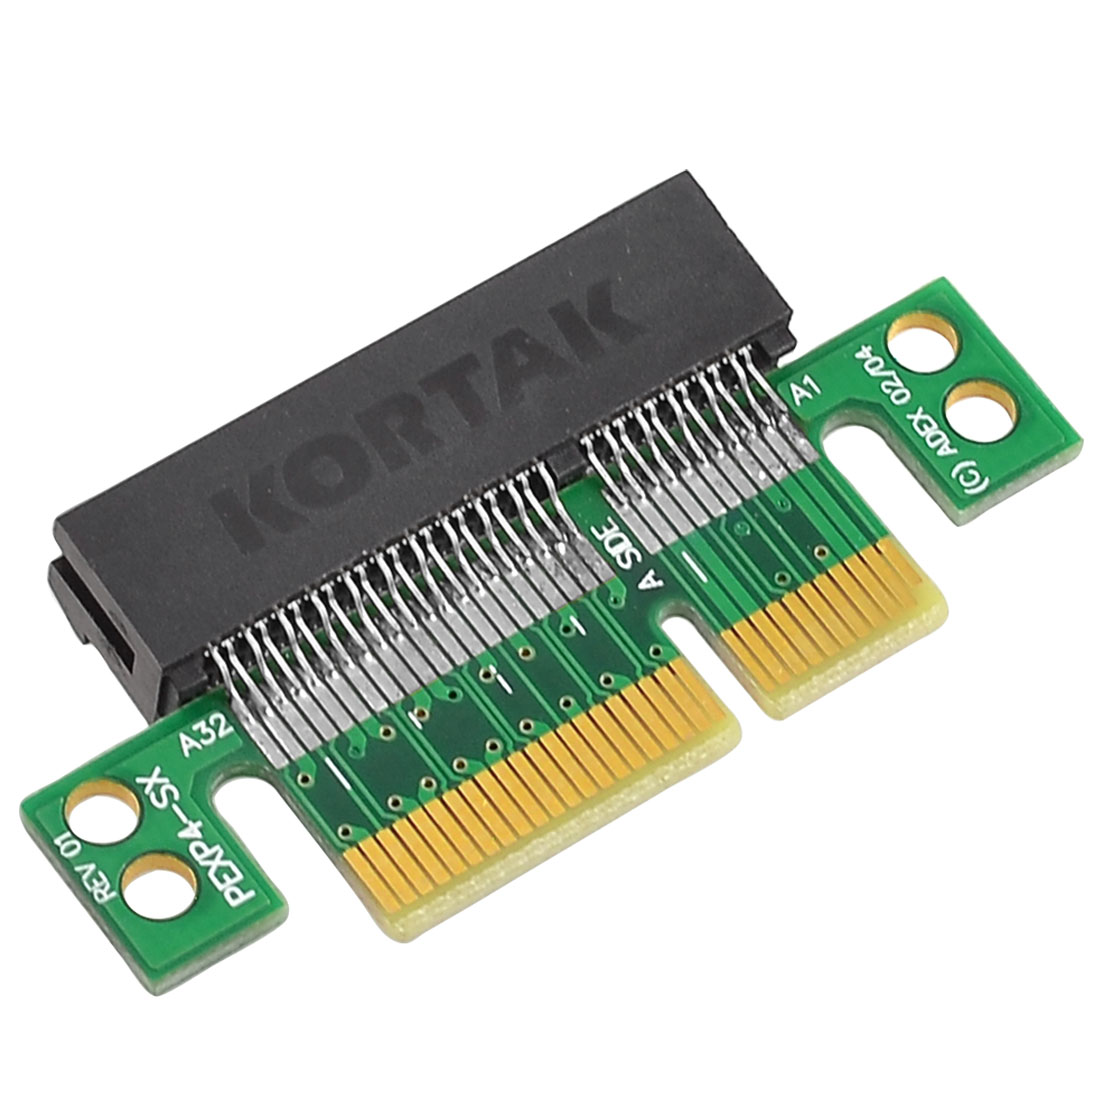 PC Computer Desktop to PCI-E PCI-Express 4X Adapter Card Connector